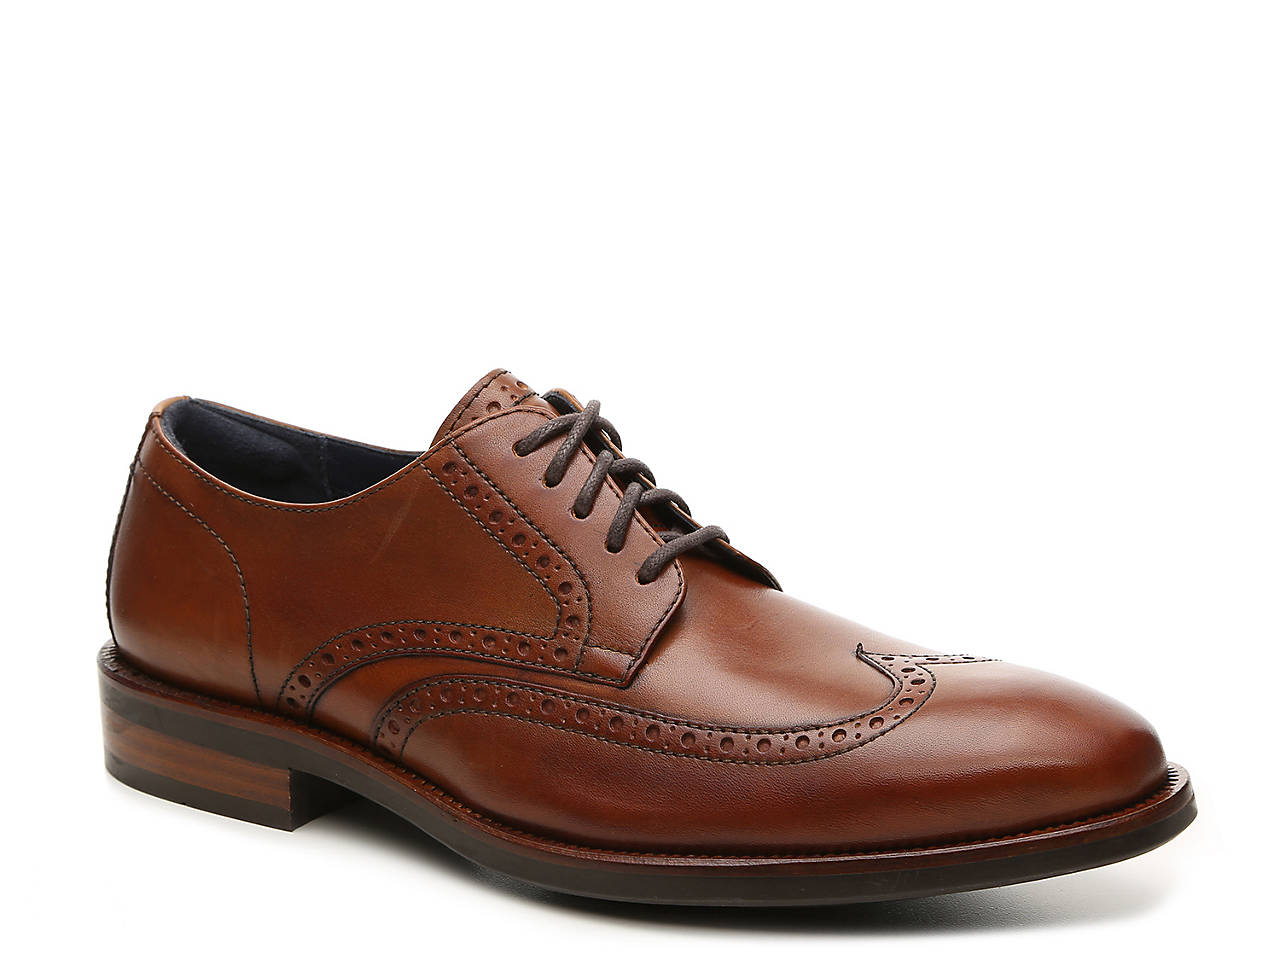 b6f82822f21b8c Cole Haan Watson Wingtip Oxford Men s Shoes